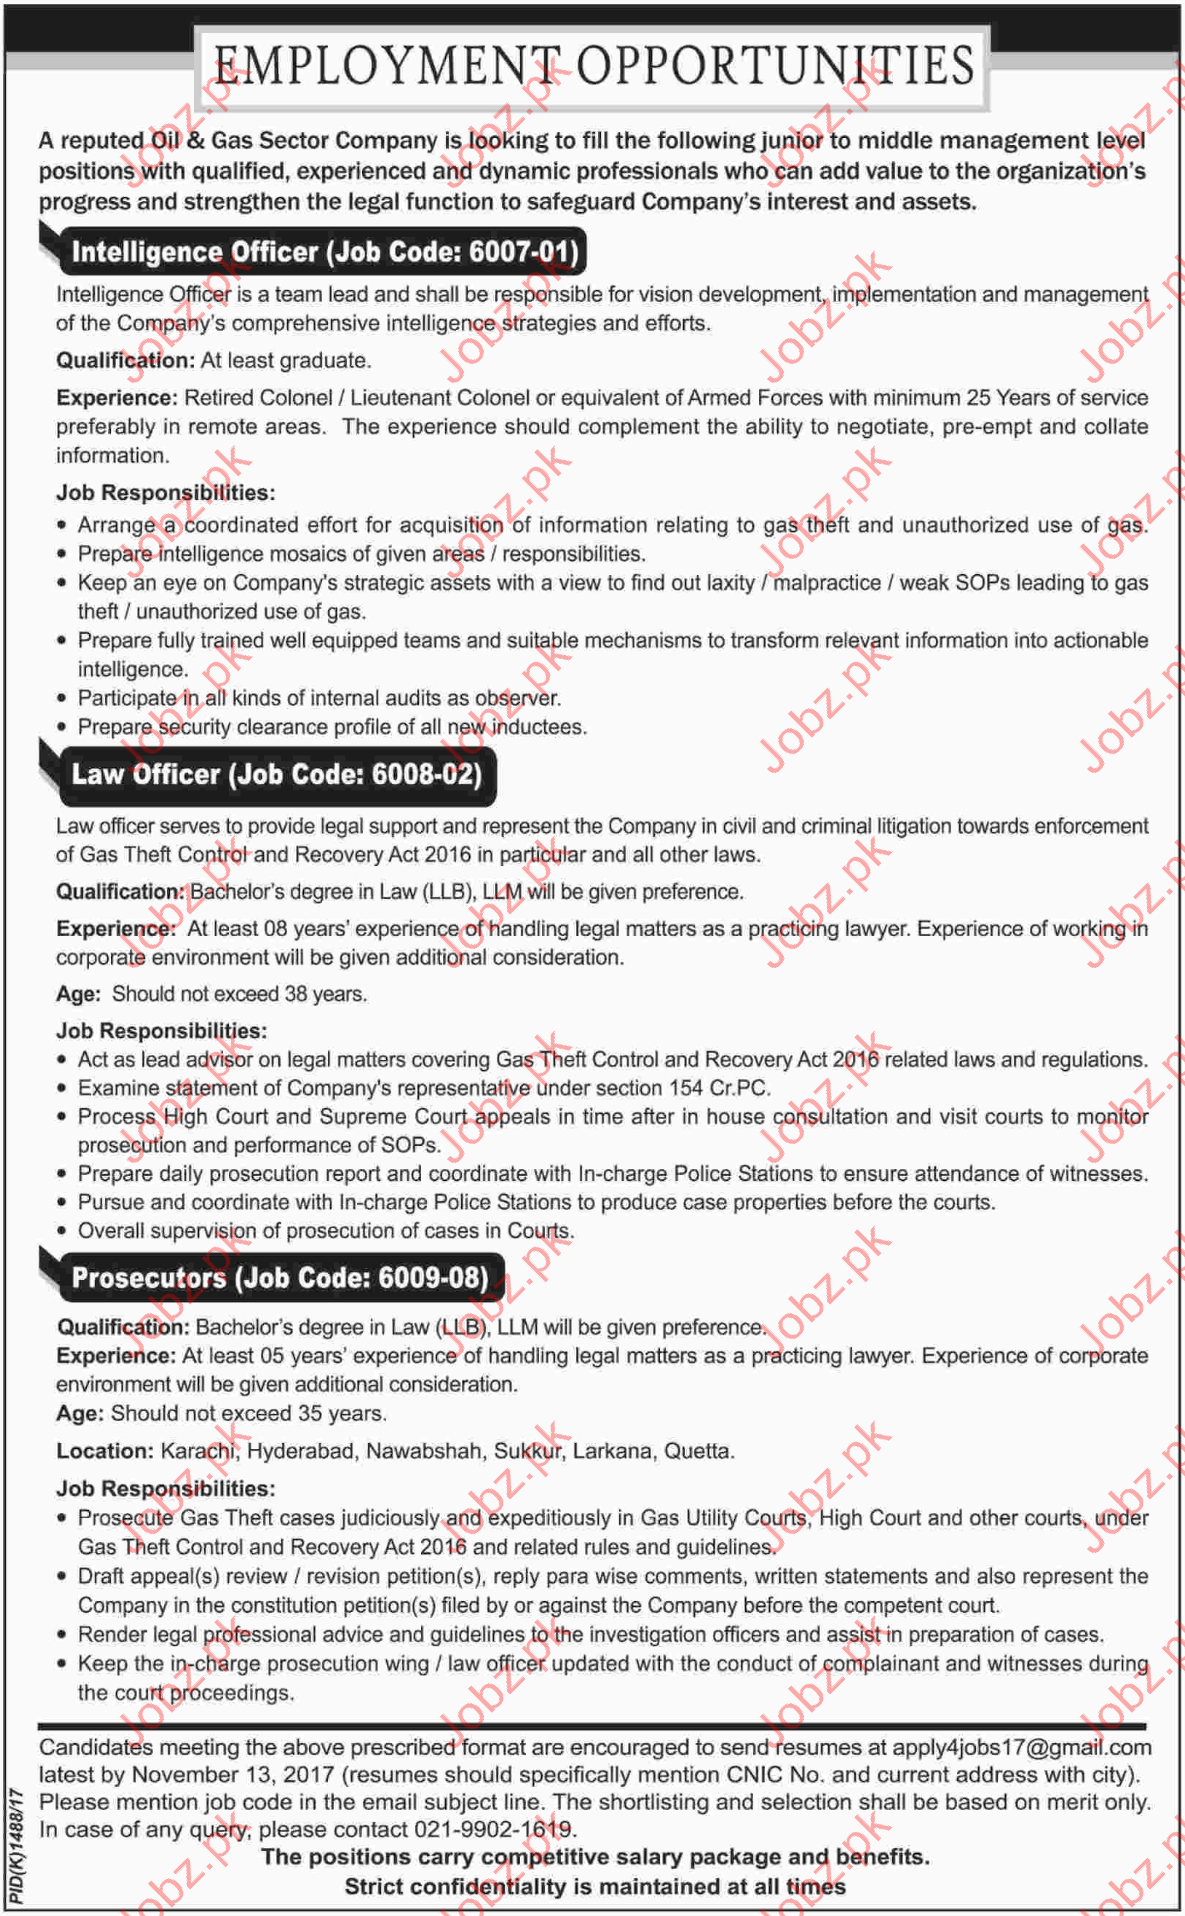 Intelligence Officer Job Description Example Email Signup Template